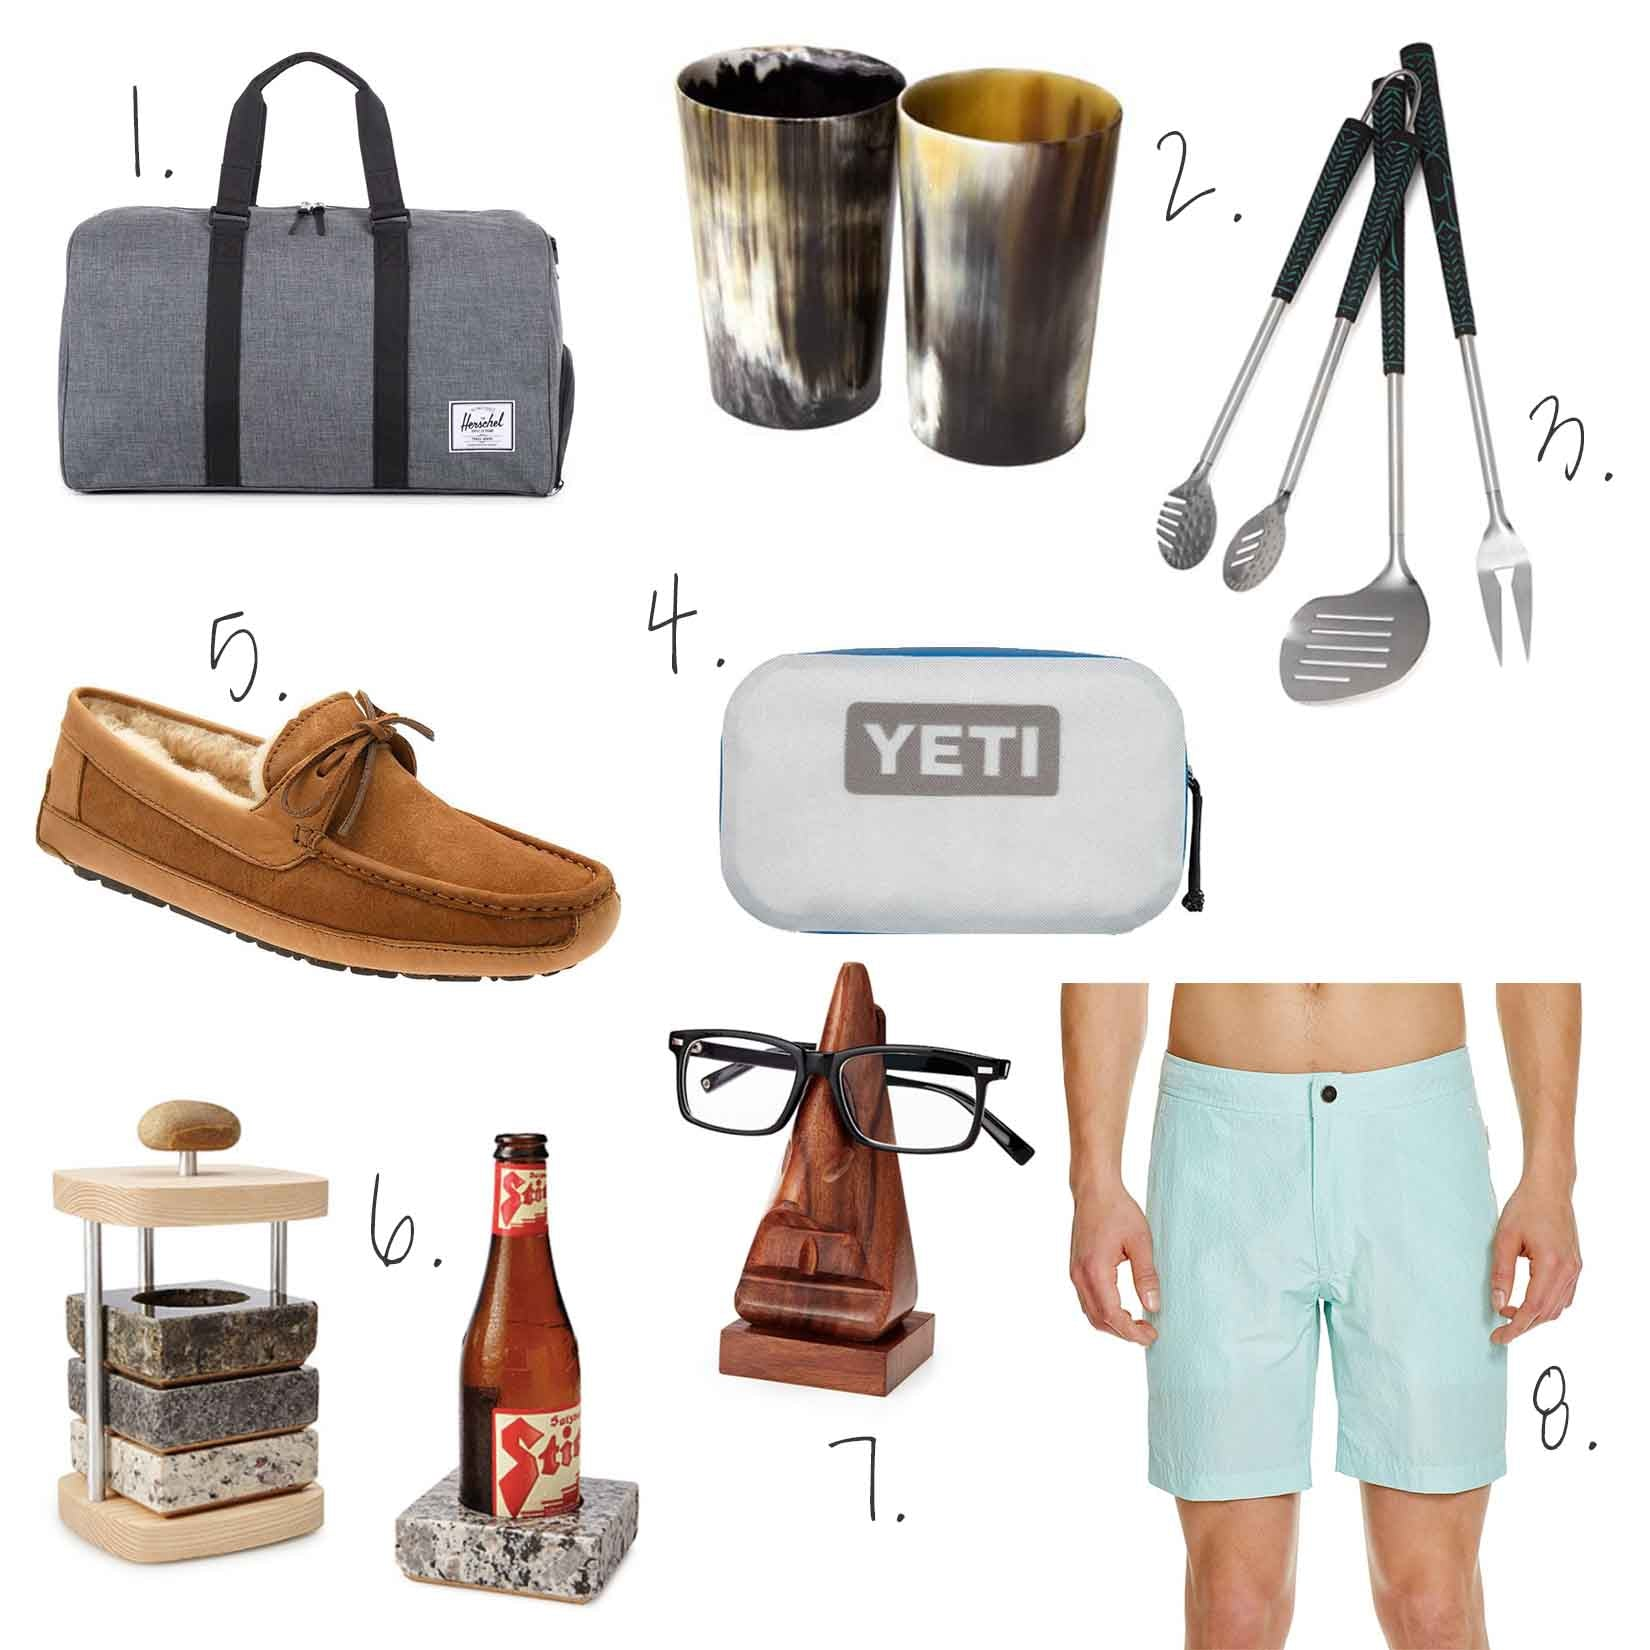 Father's Day, Gift Guide, NEAT Method, Dad, Yeti, Onia, Herschel duffle, ugg slippers, grill tools